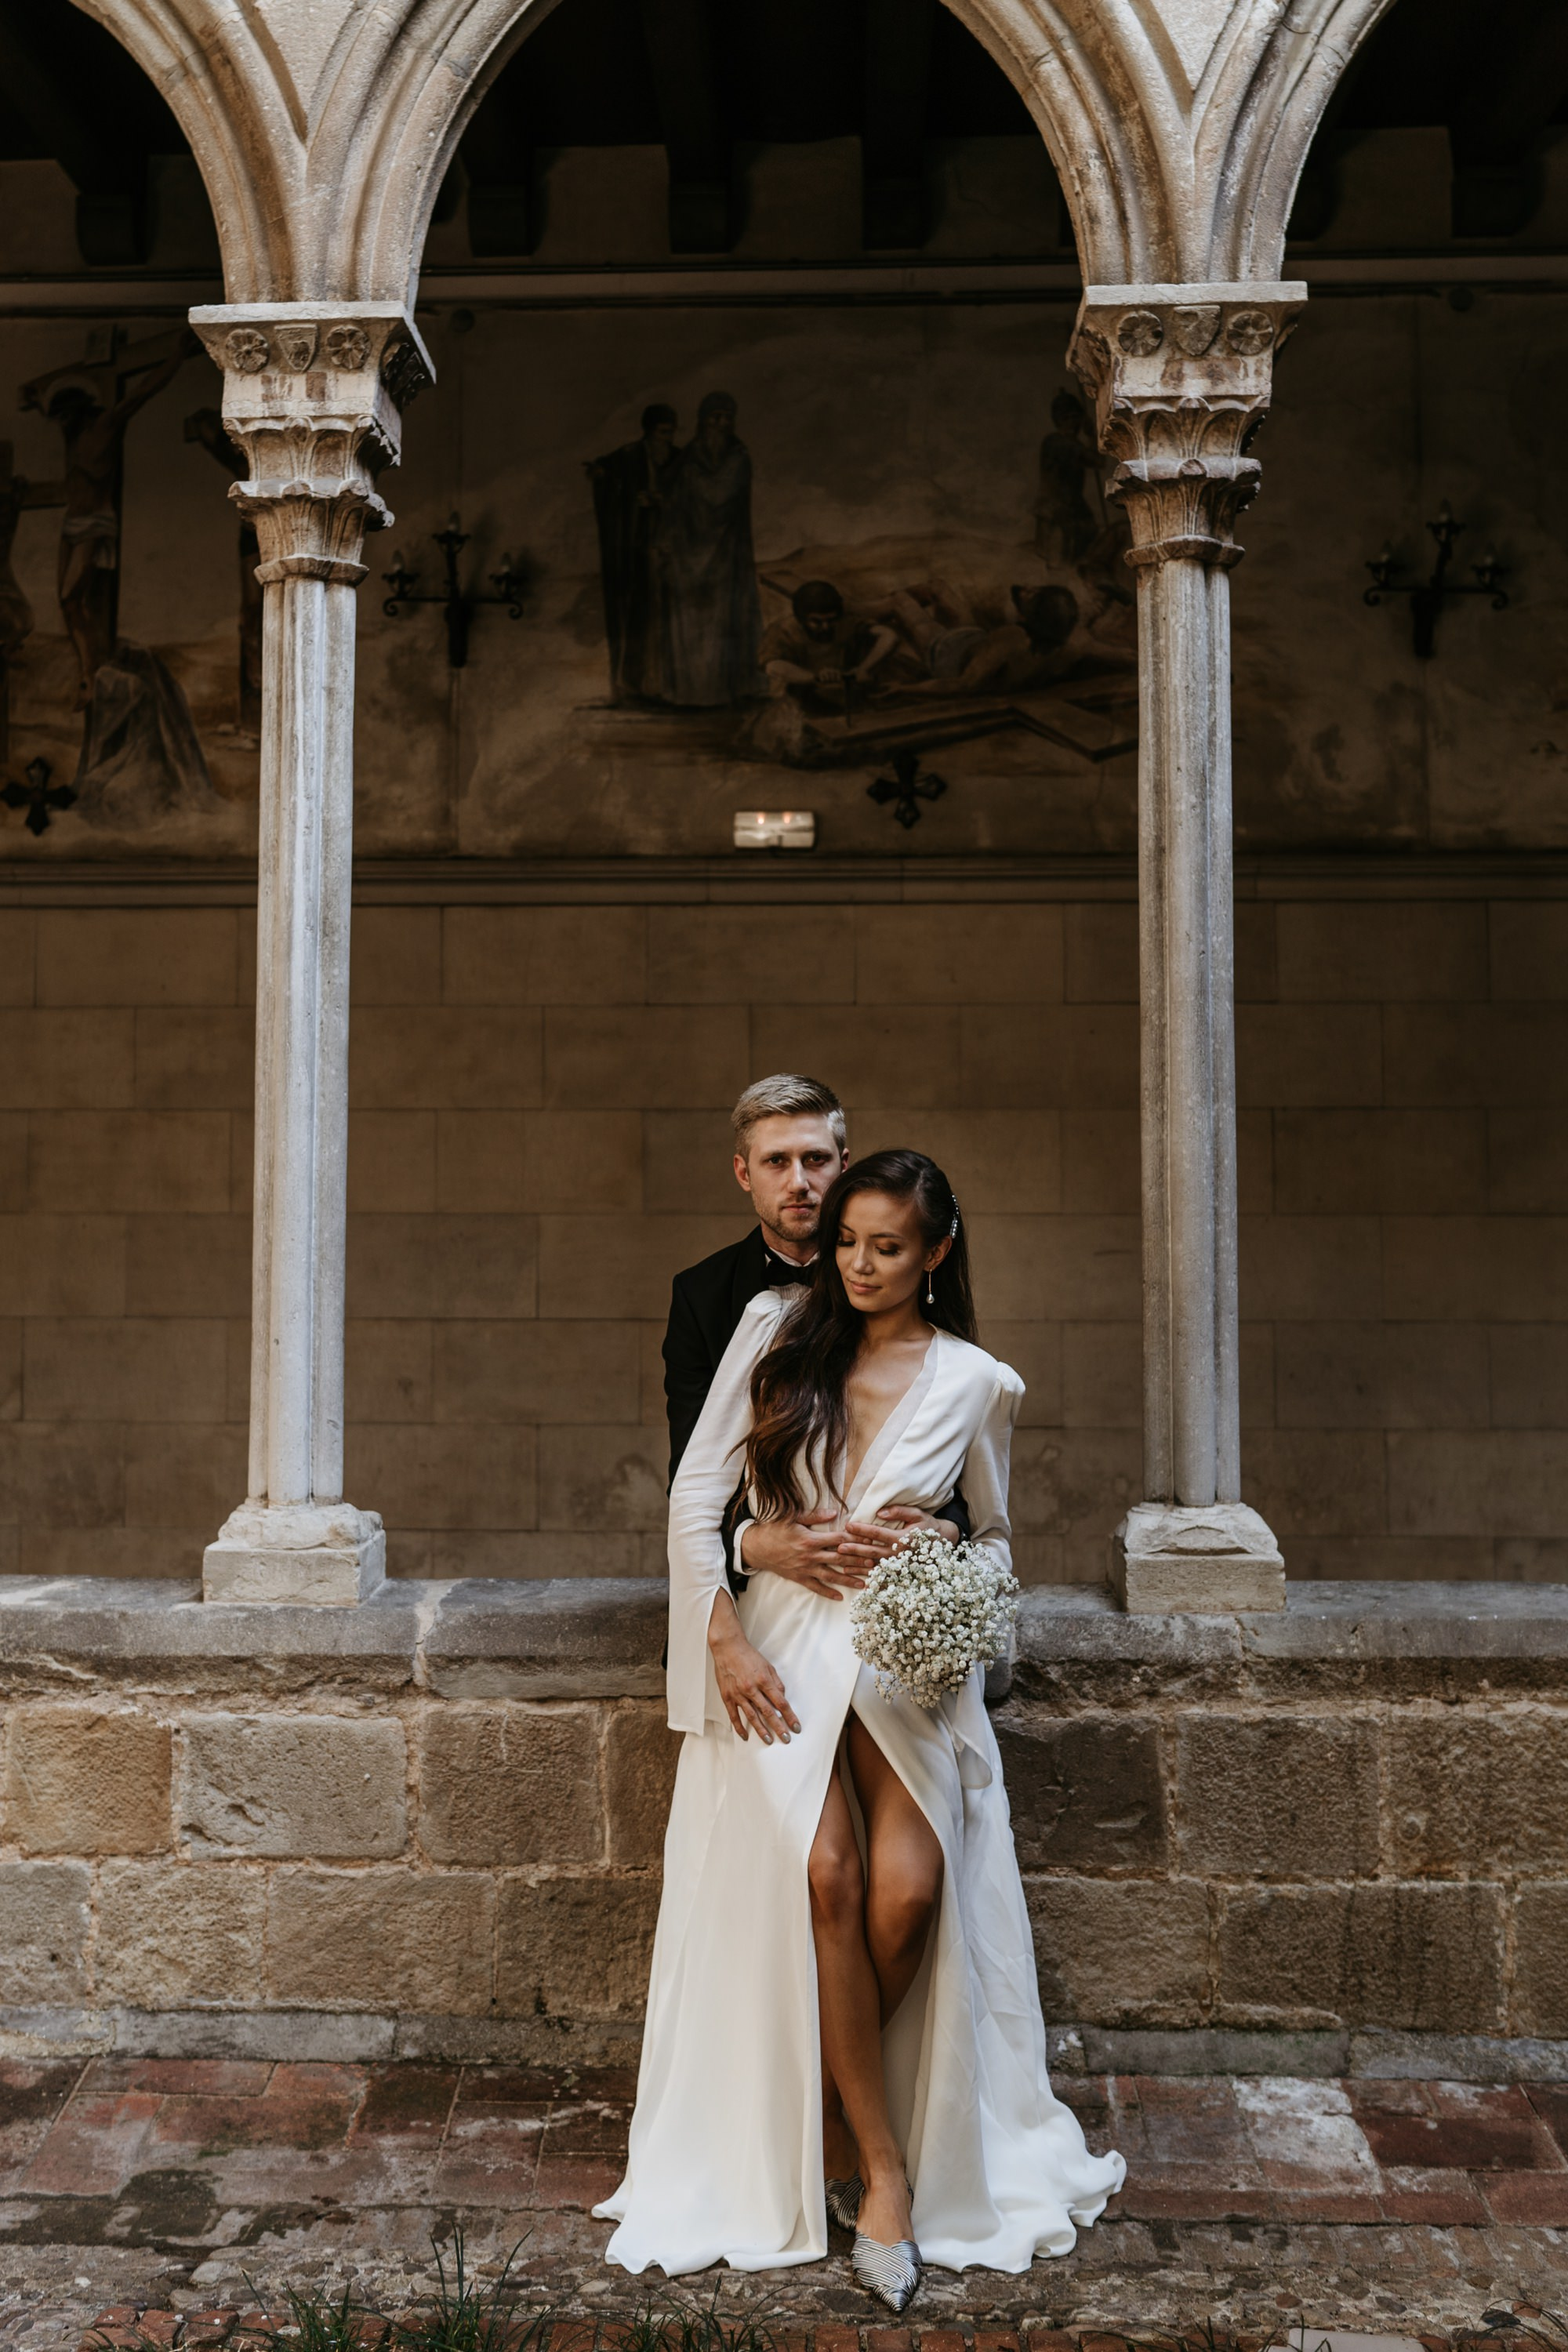 natural wedding photography private wedding barcelona 0147 1